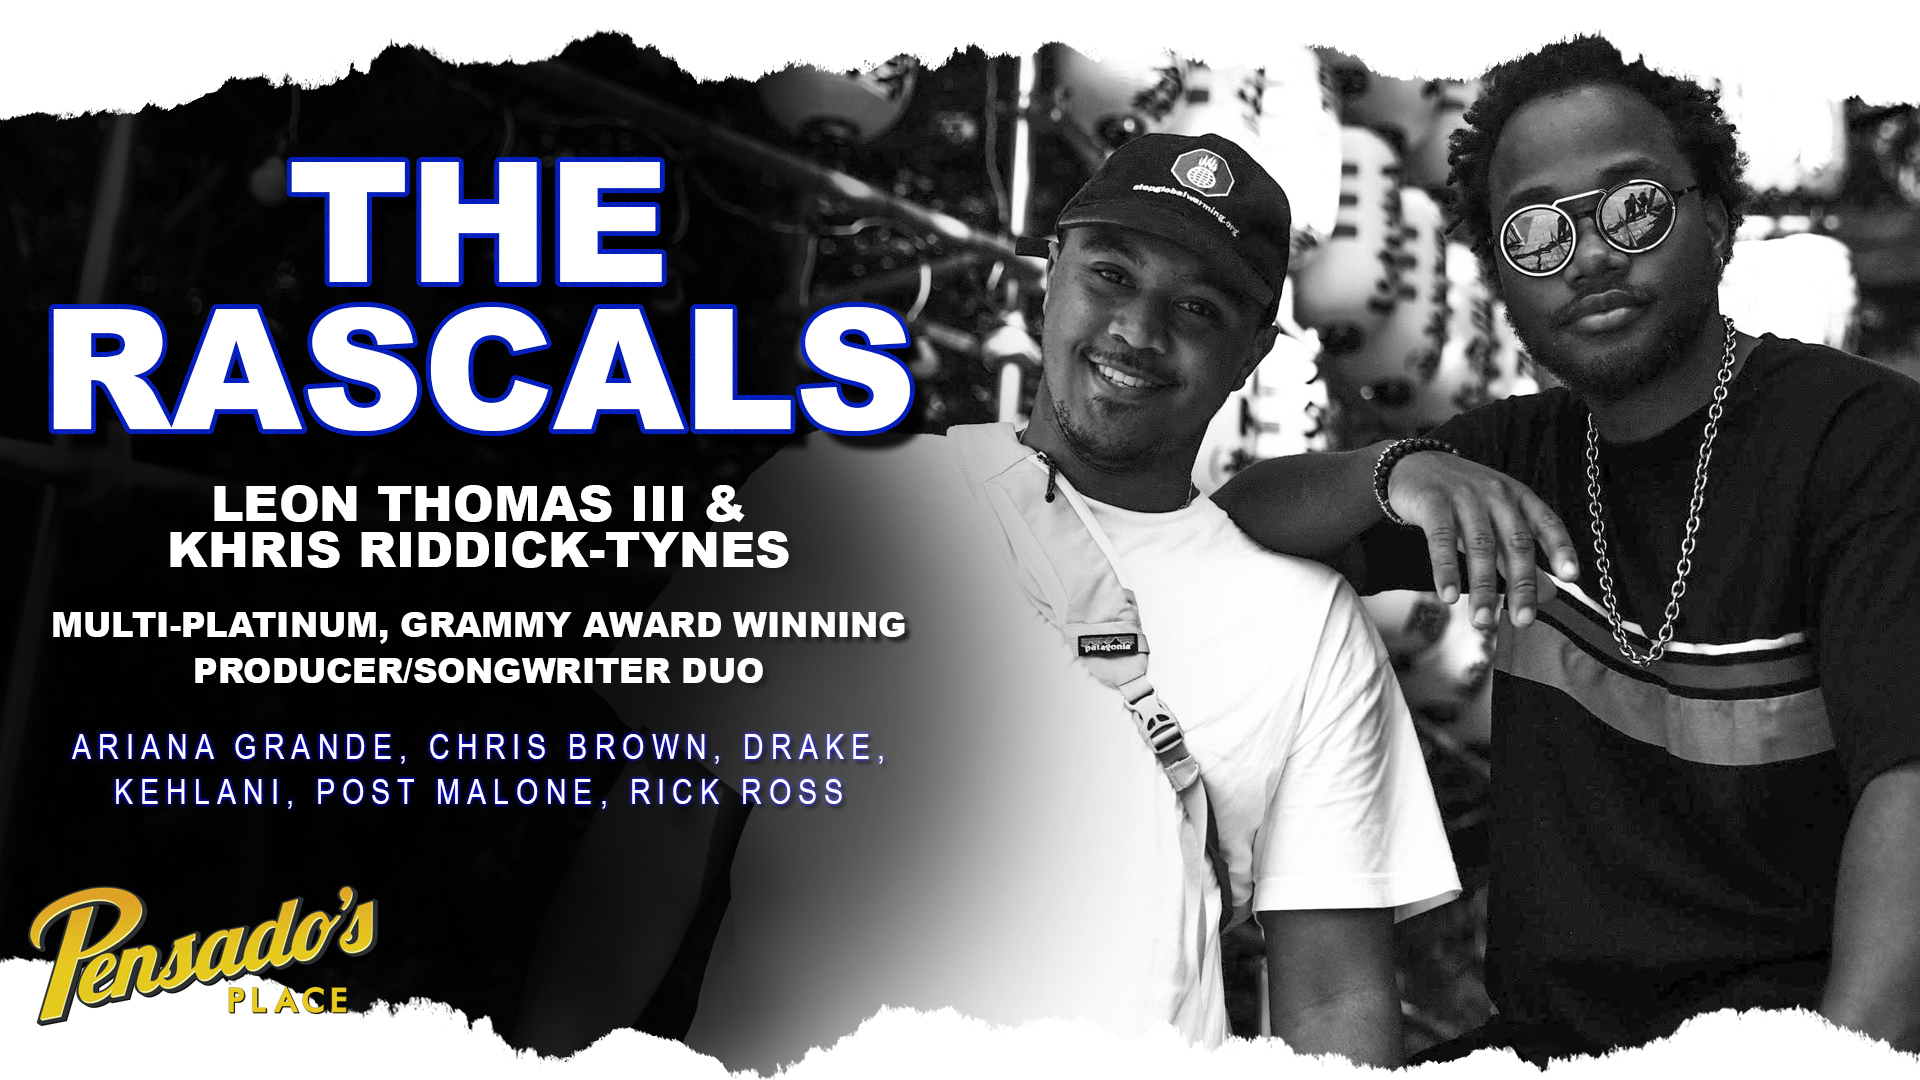 Multi-Platinum, Grammy Award Winning Producer / Songwriting Duo, The Rascals